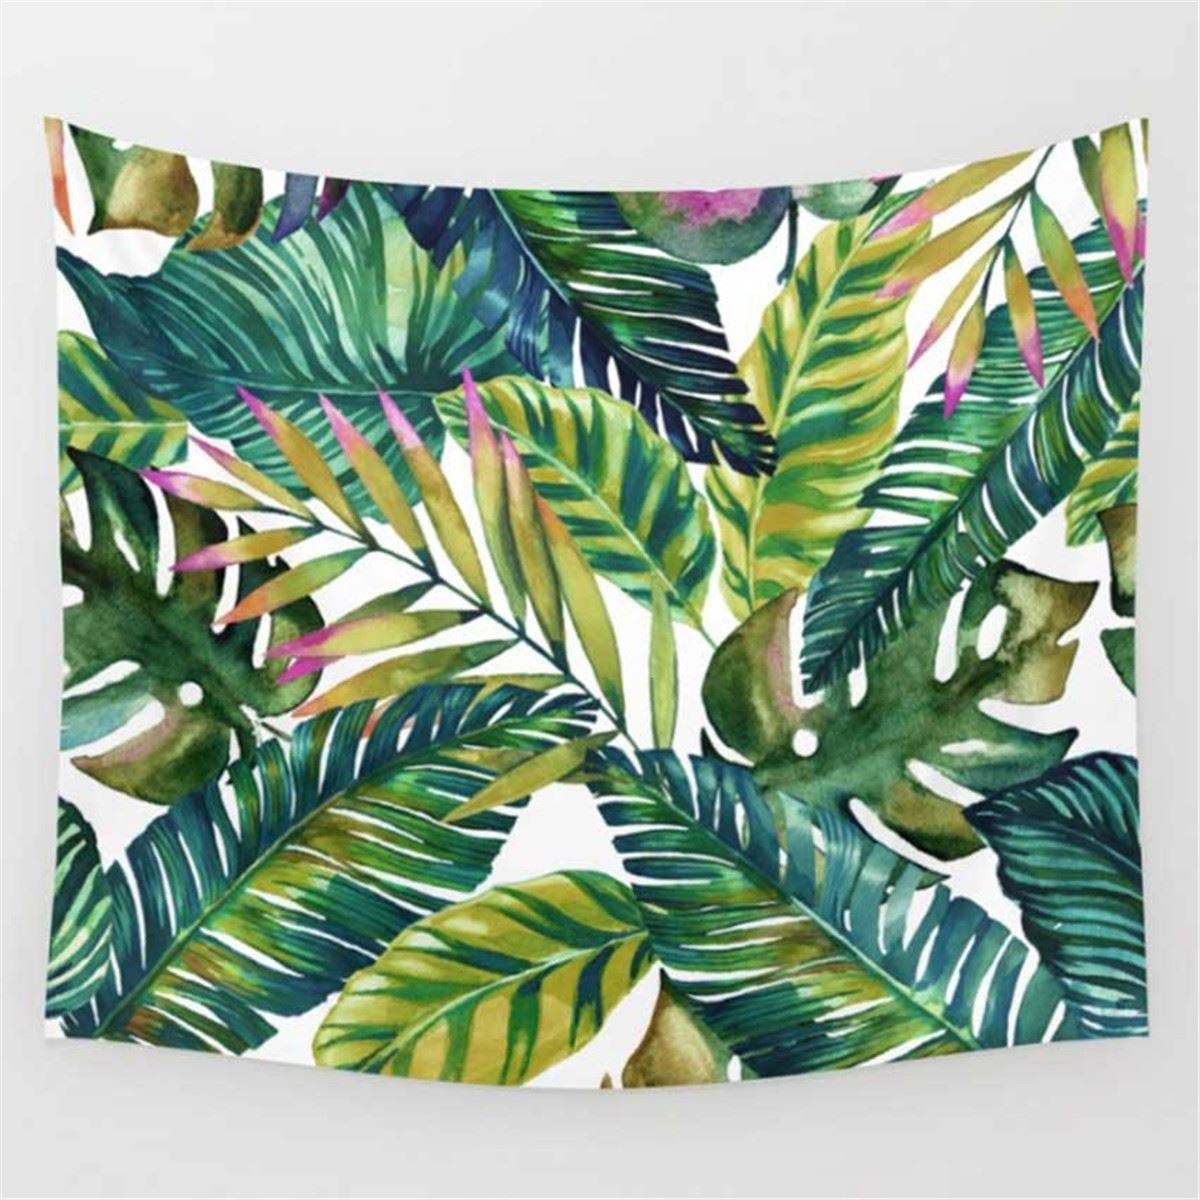 Tropical Banana Leaf Wall Tapestry - 5x5ft - Tapestry Room